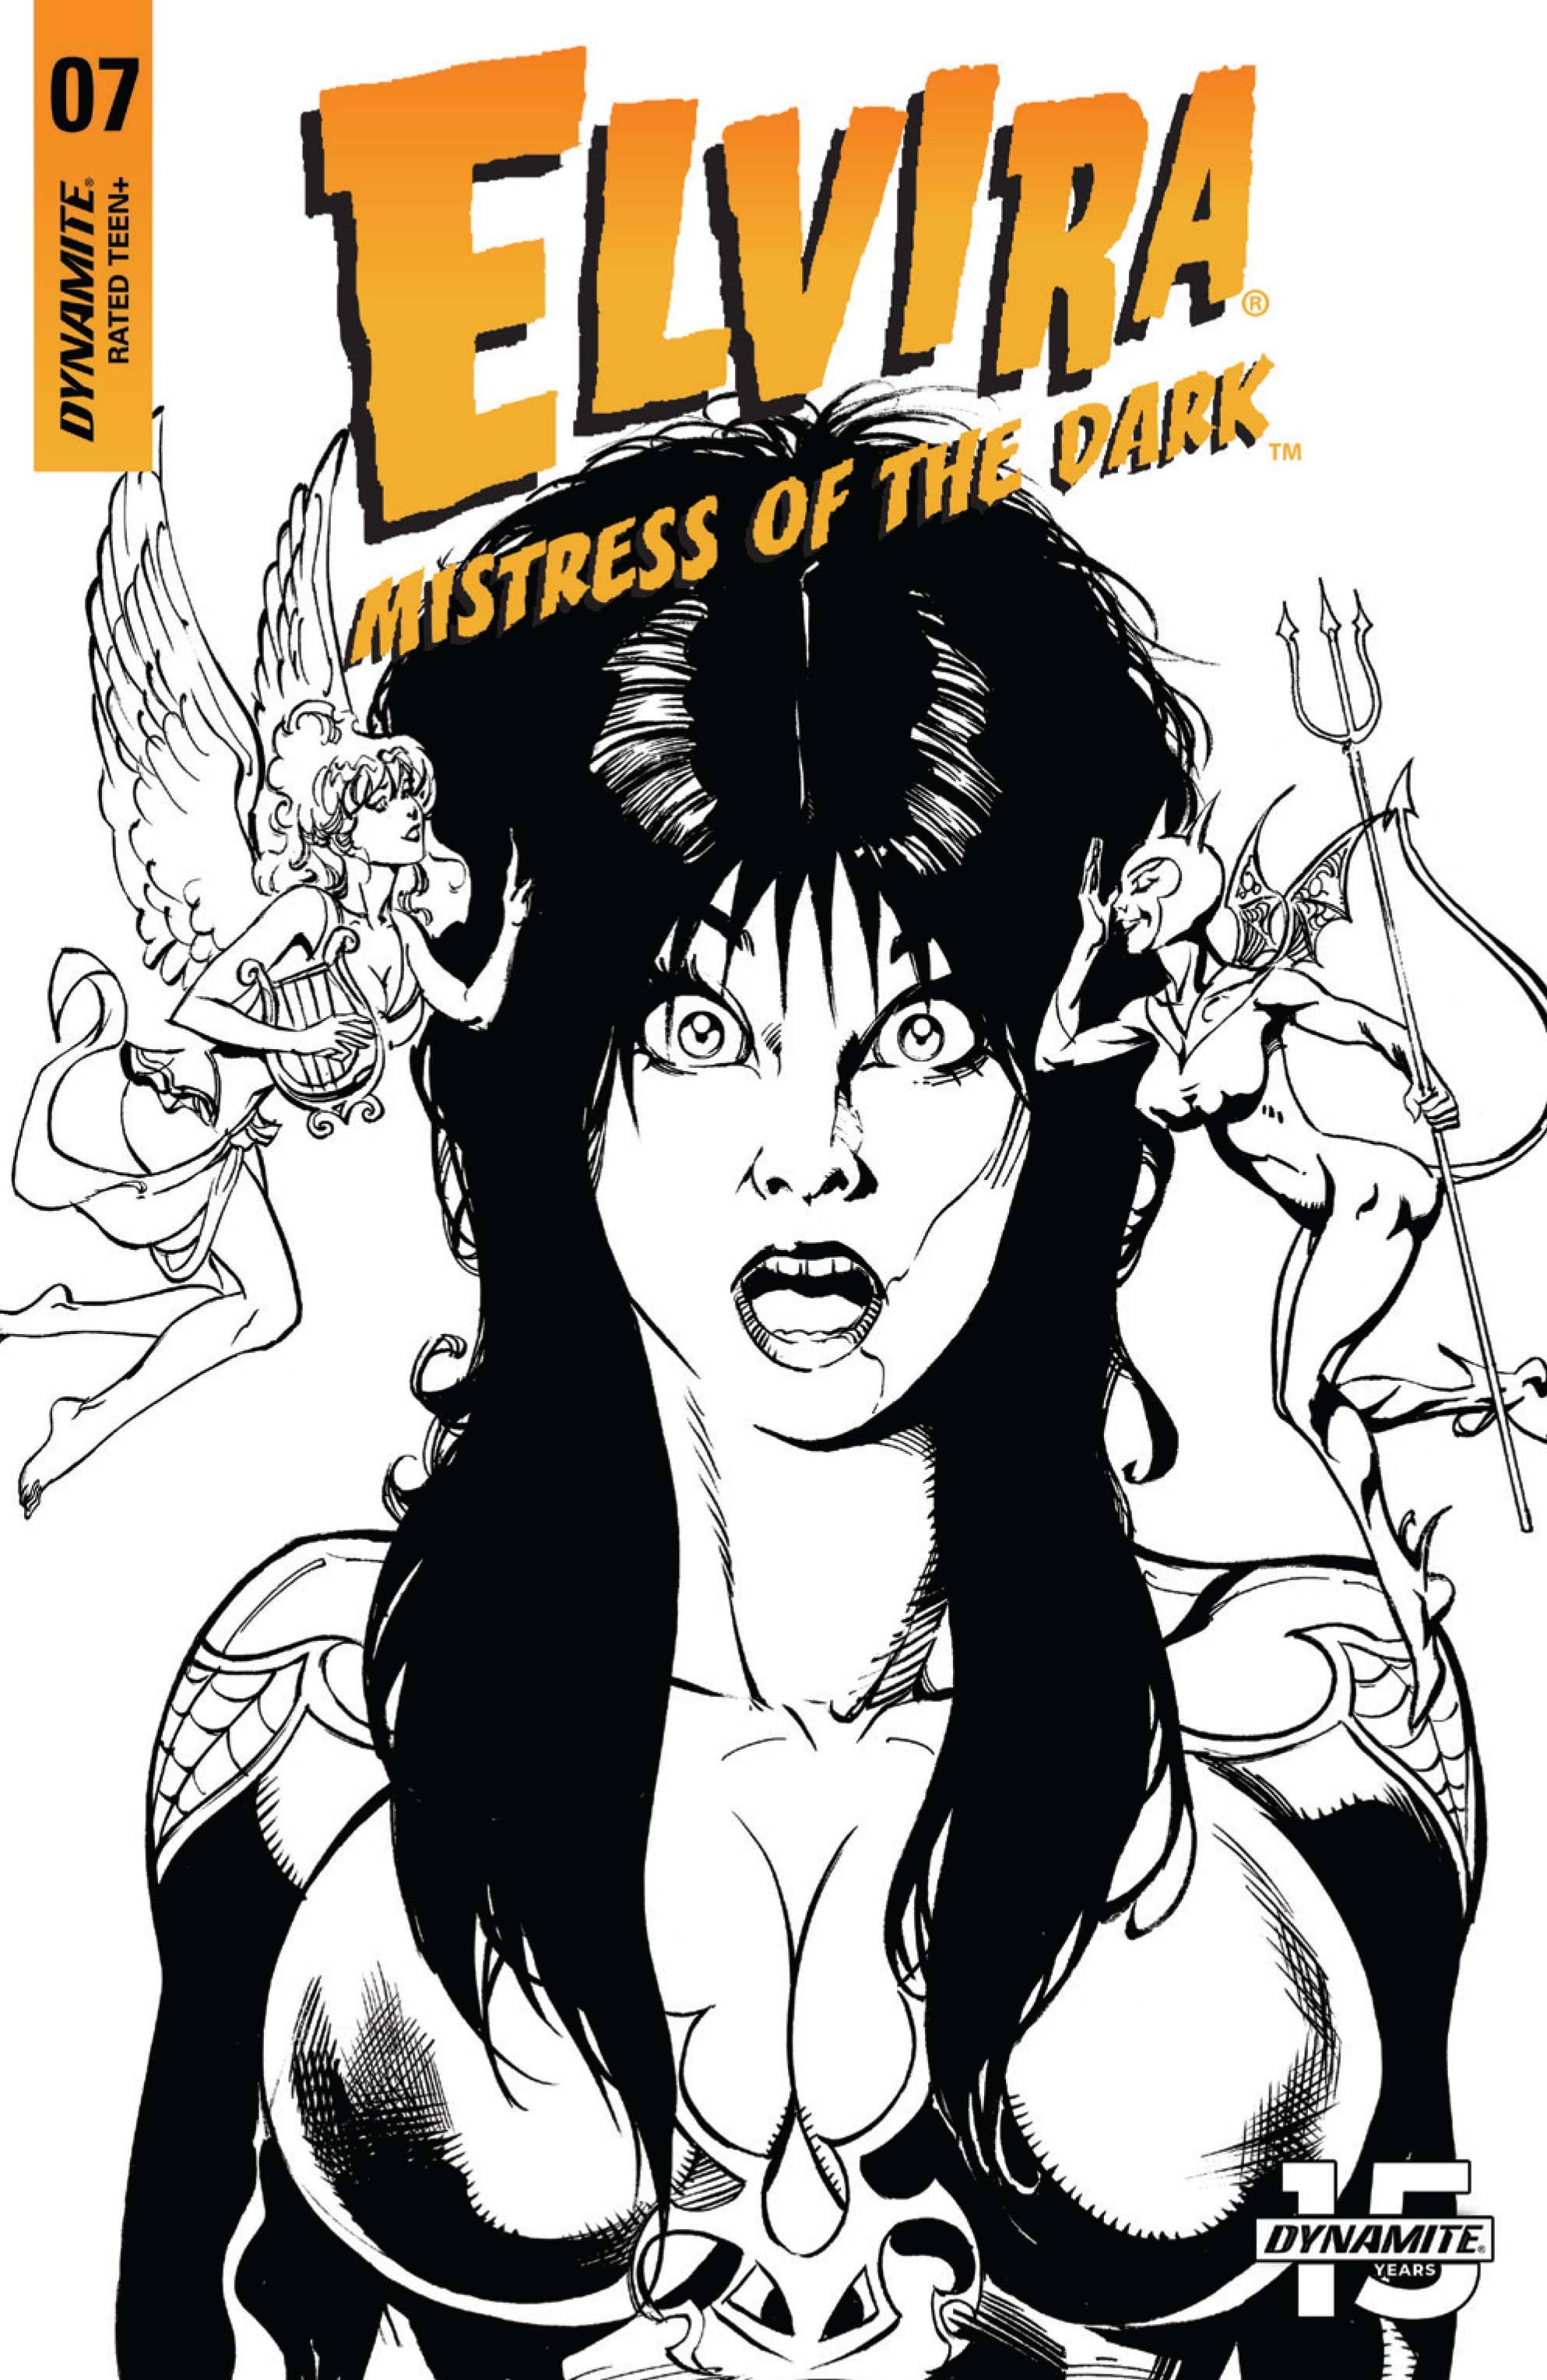 ELVIRA MISTRESS OF DARK #7 15 COPY CASTRO FOC B&W INCV.jpg